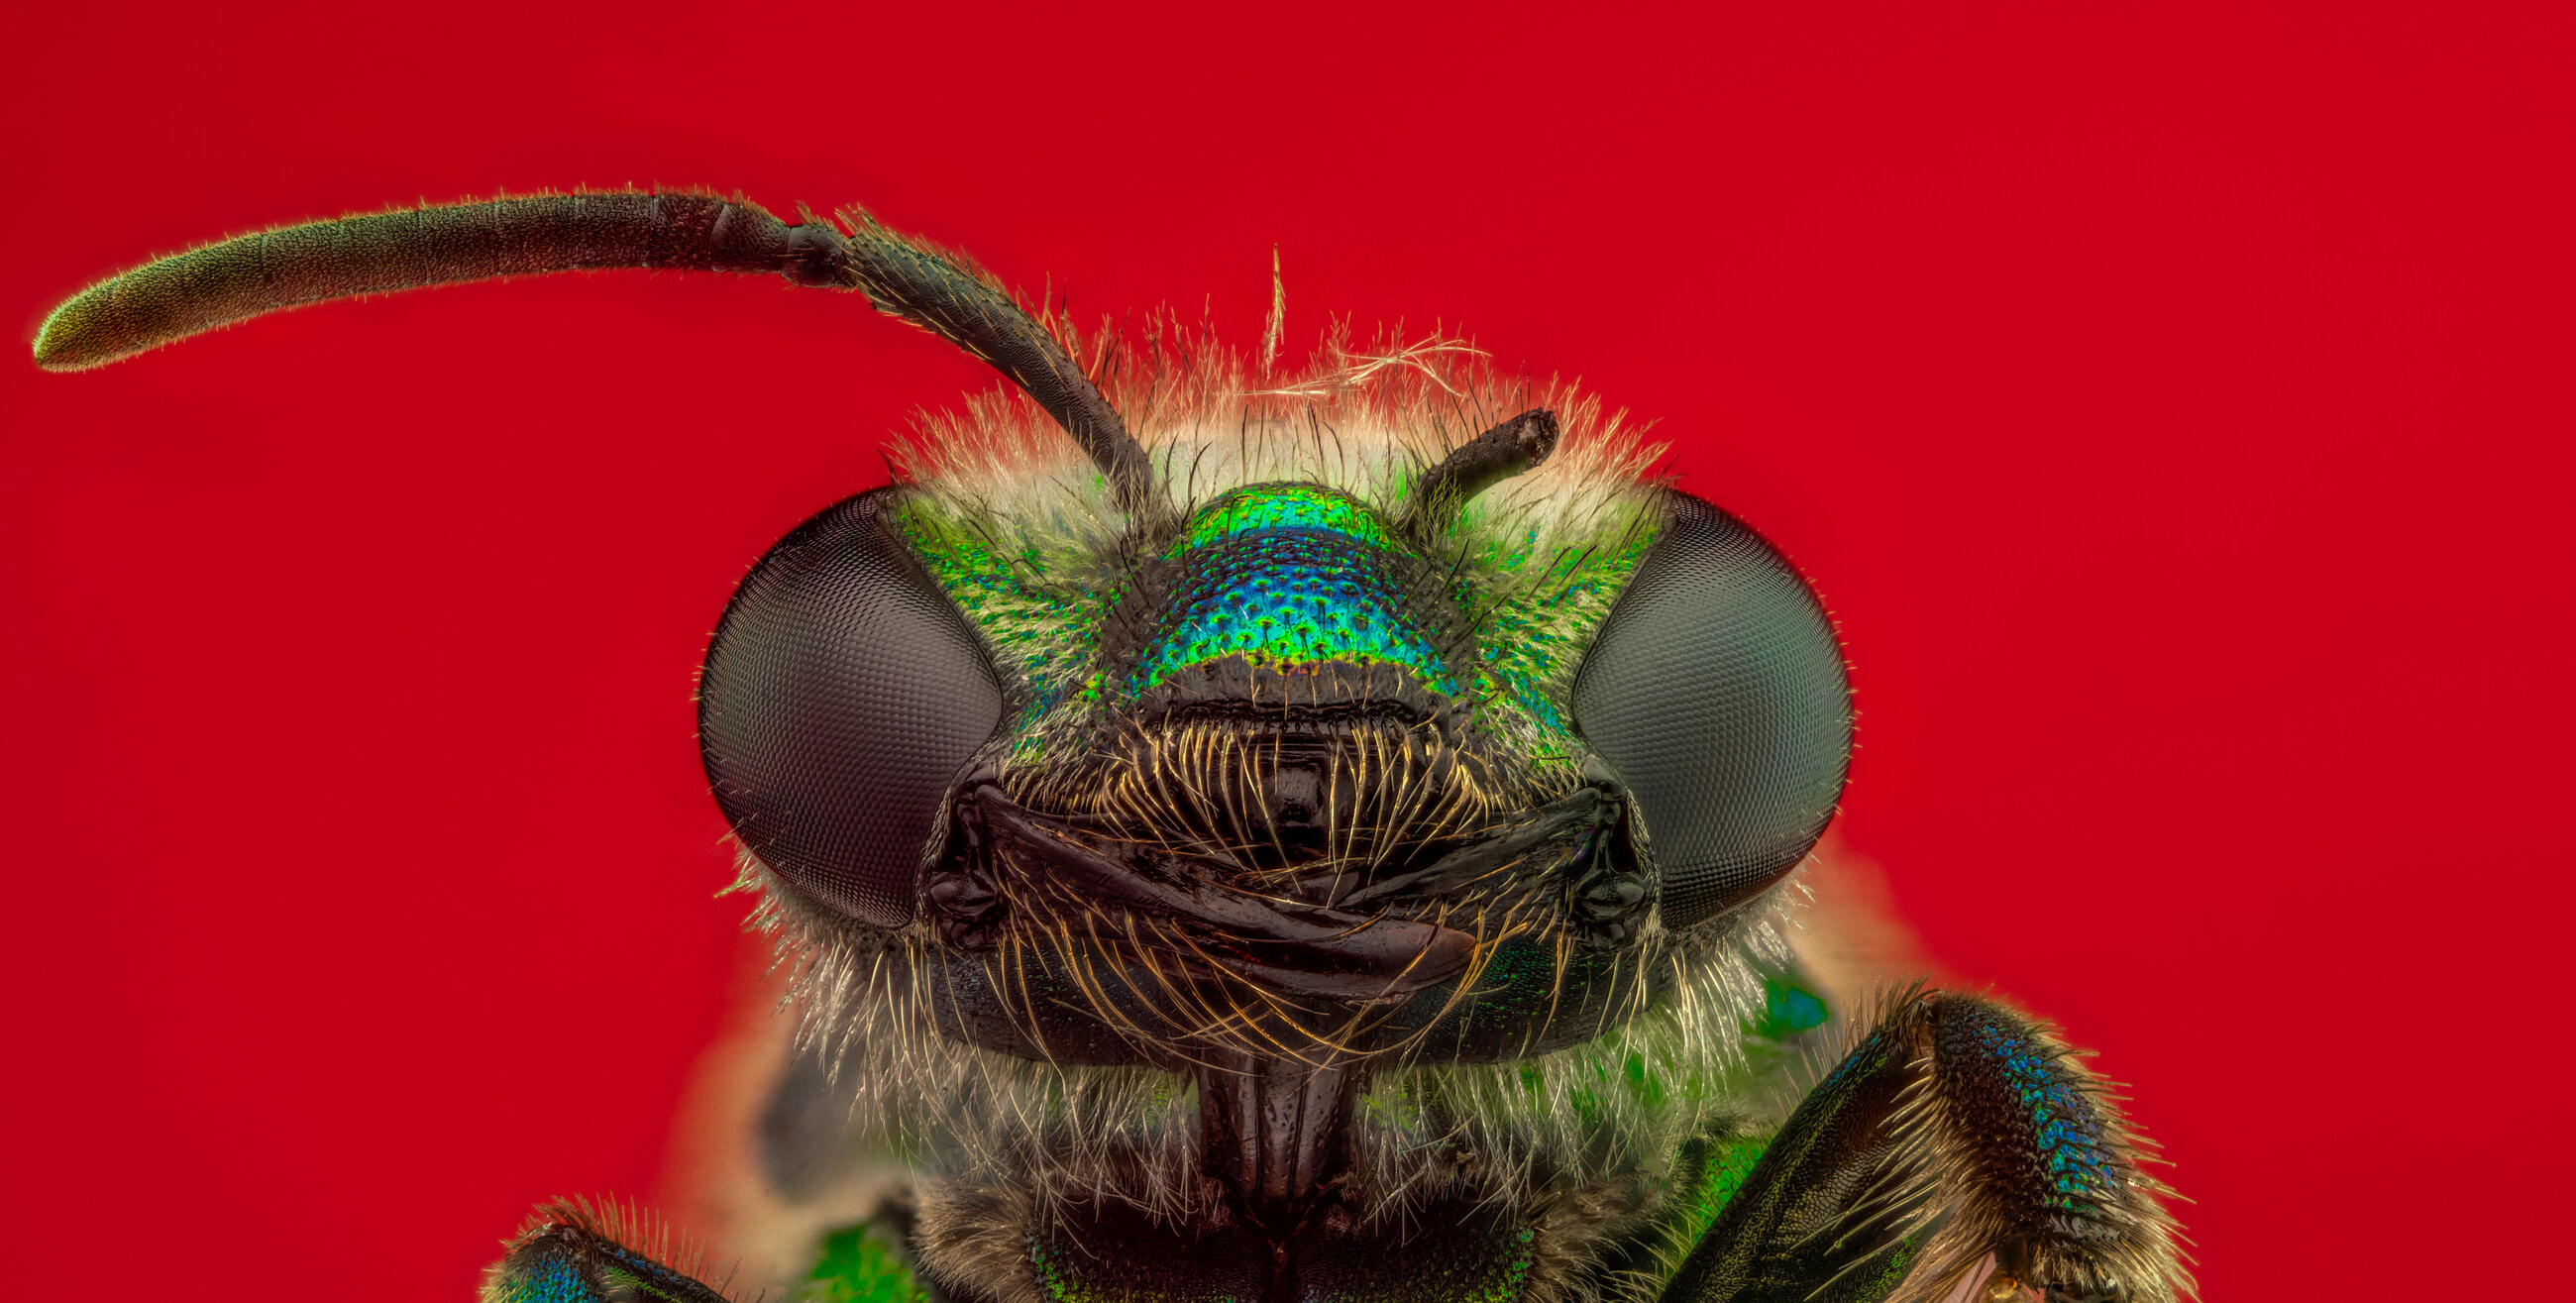 A green bee looking at the camera on a background, one antenna is missing